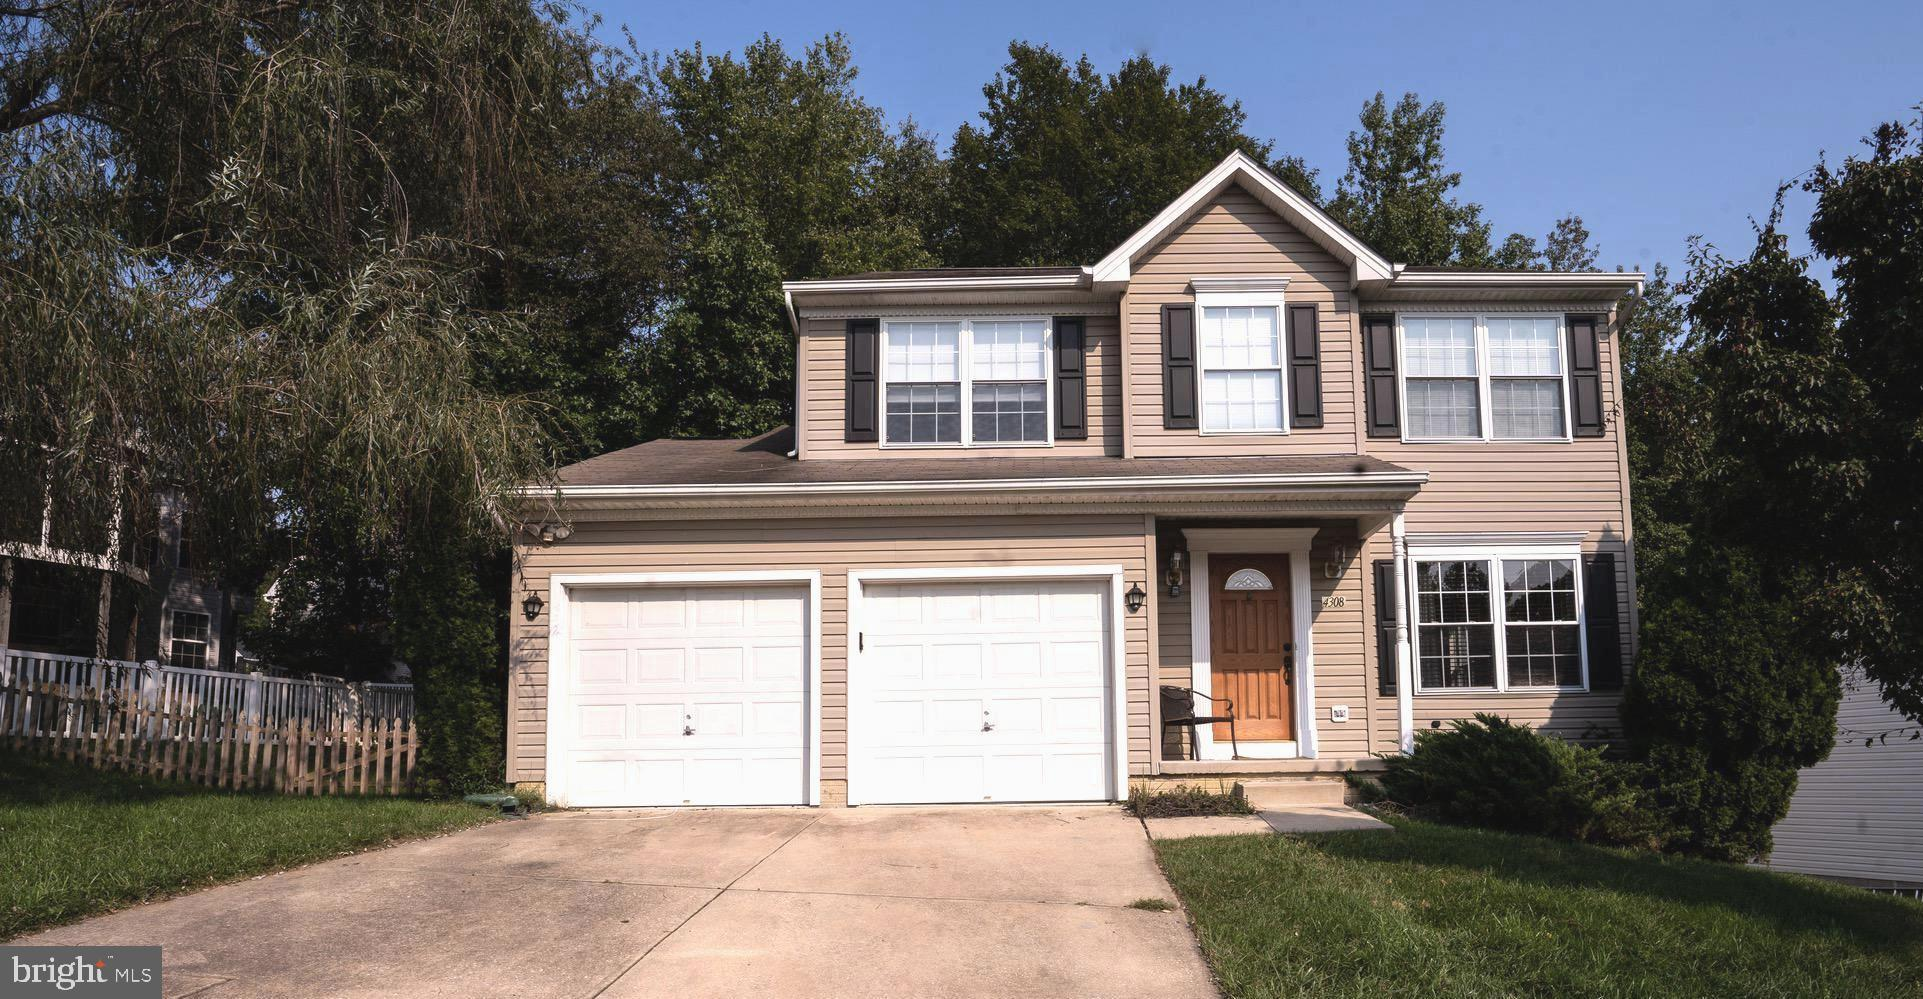 Come see this beautiful 3 Bedroom 2 1/2 bath Colonial home. Gorgeous Harwood floors in the Living ro